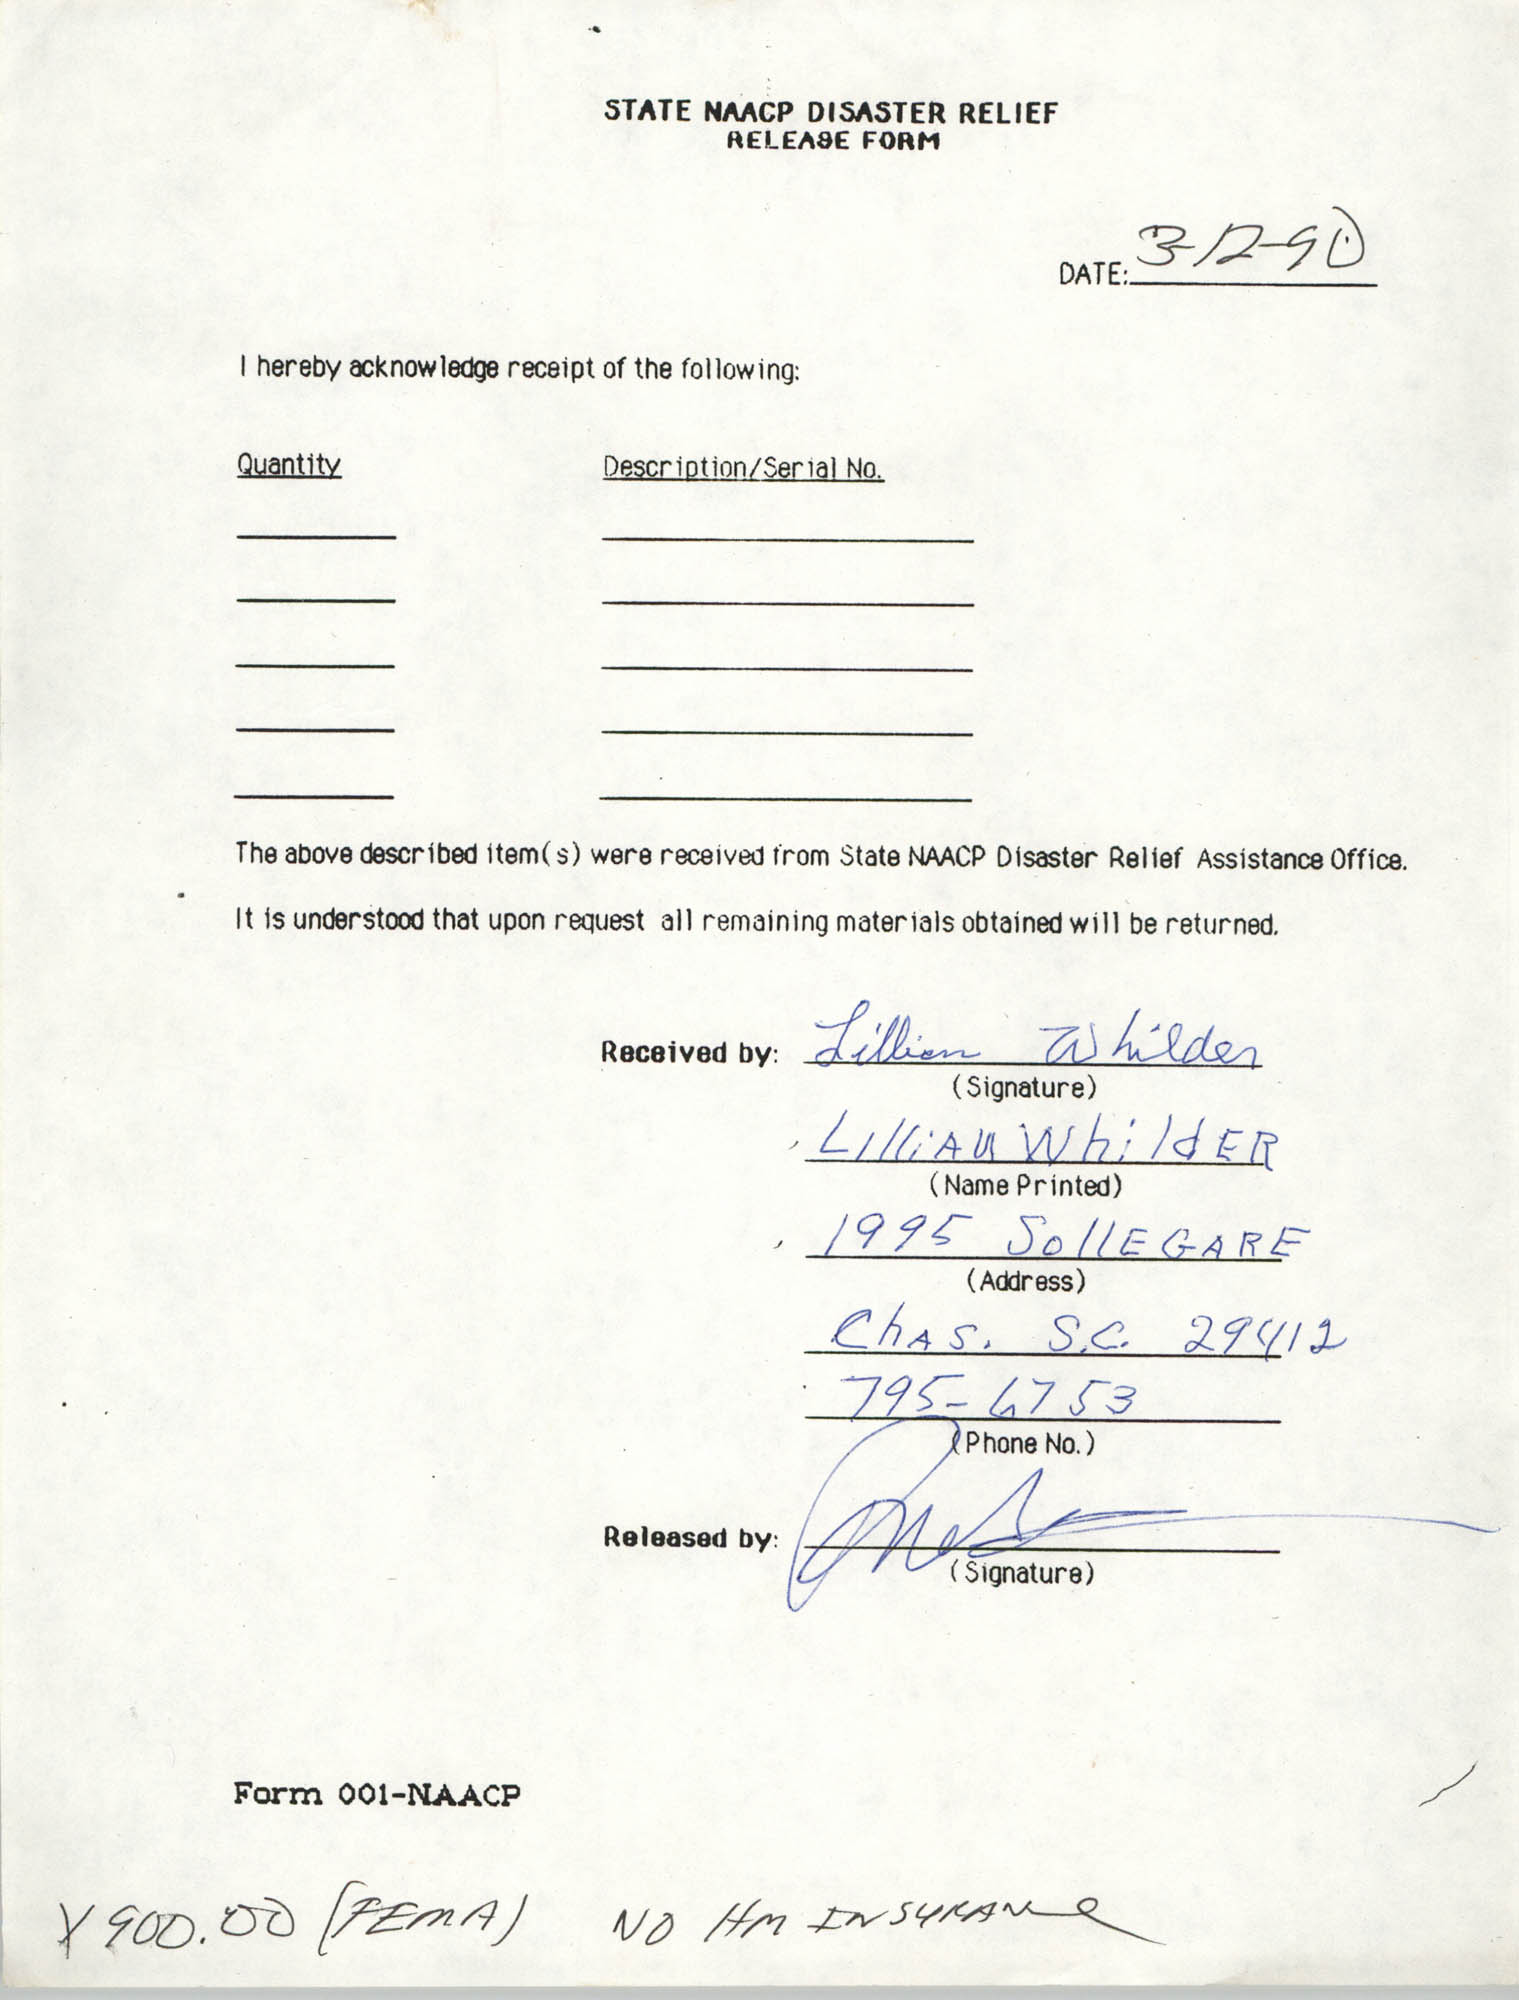 State NAACP Disaster Relief, Hurricane Huge Release Form, 1989, Page 12